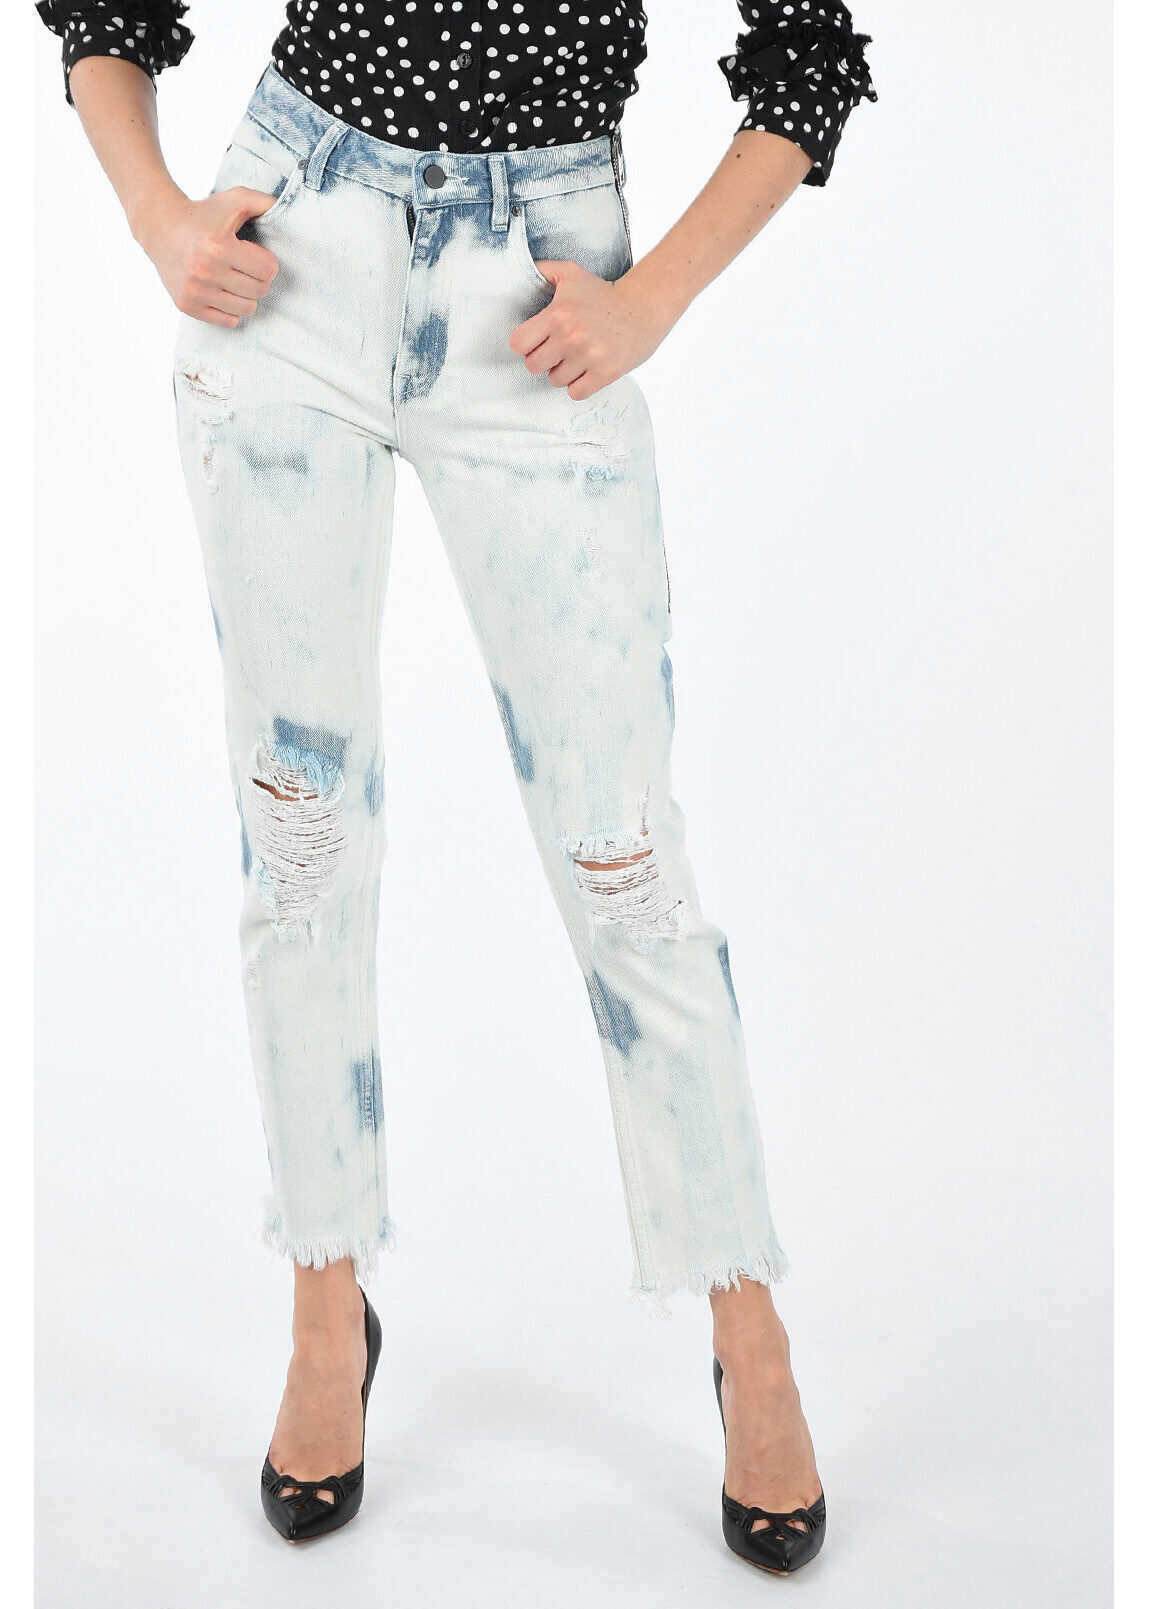 X 16cm Distressed CULT Jeans thumbnail